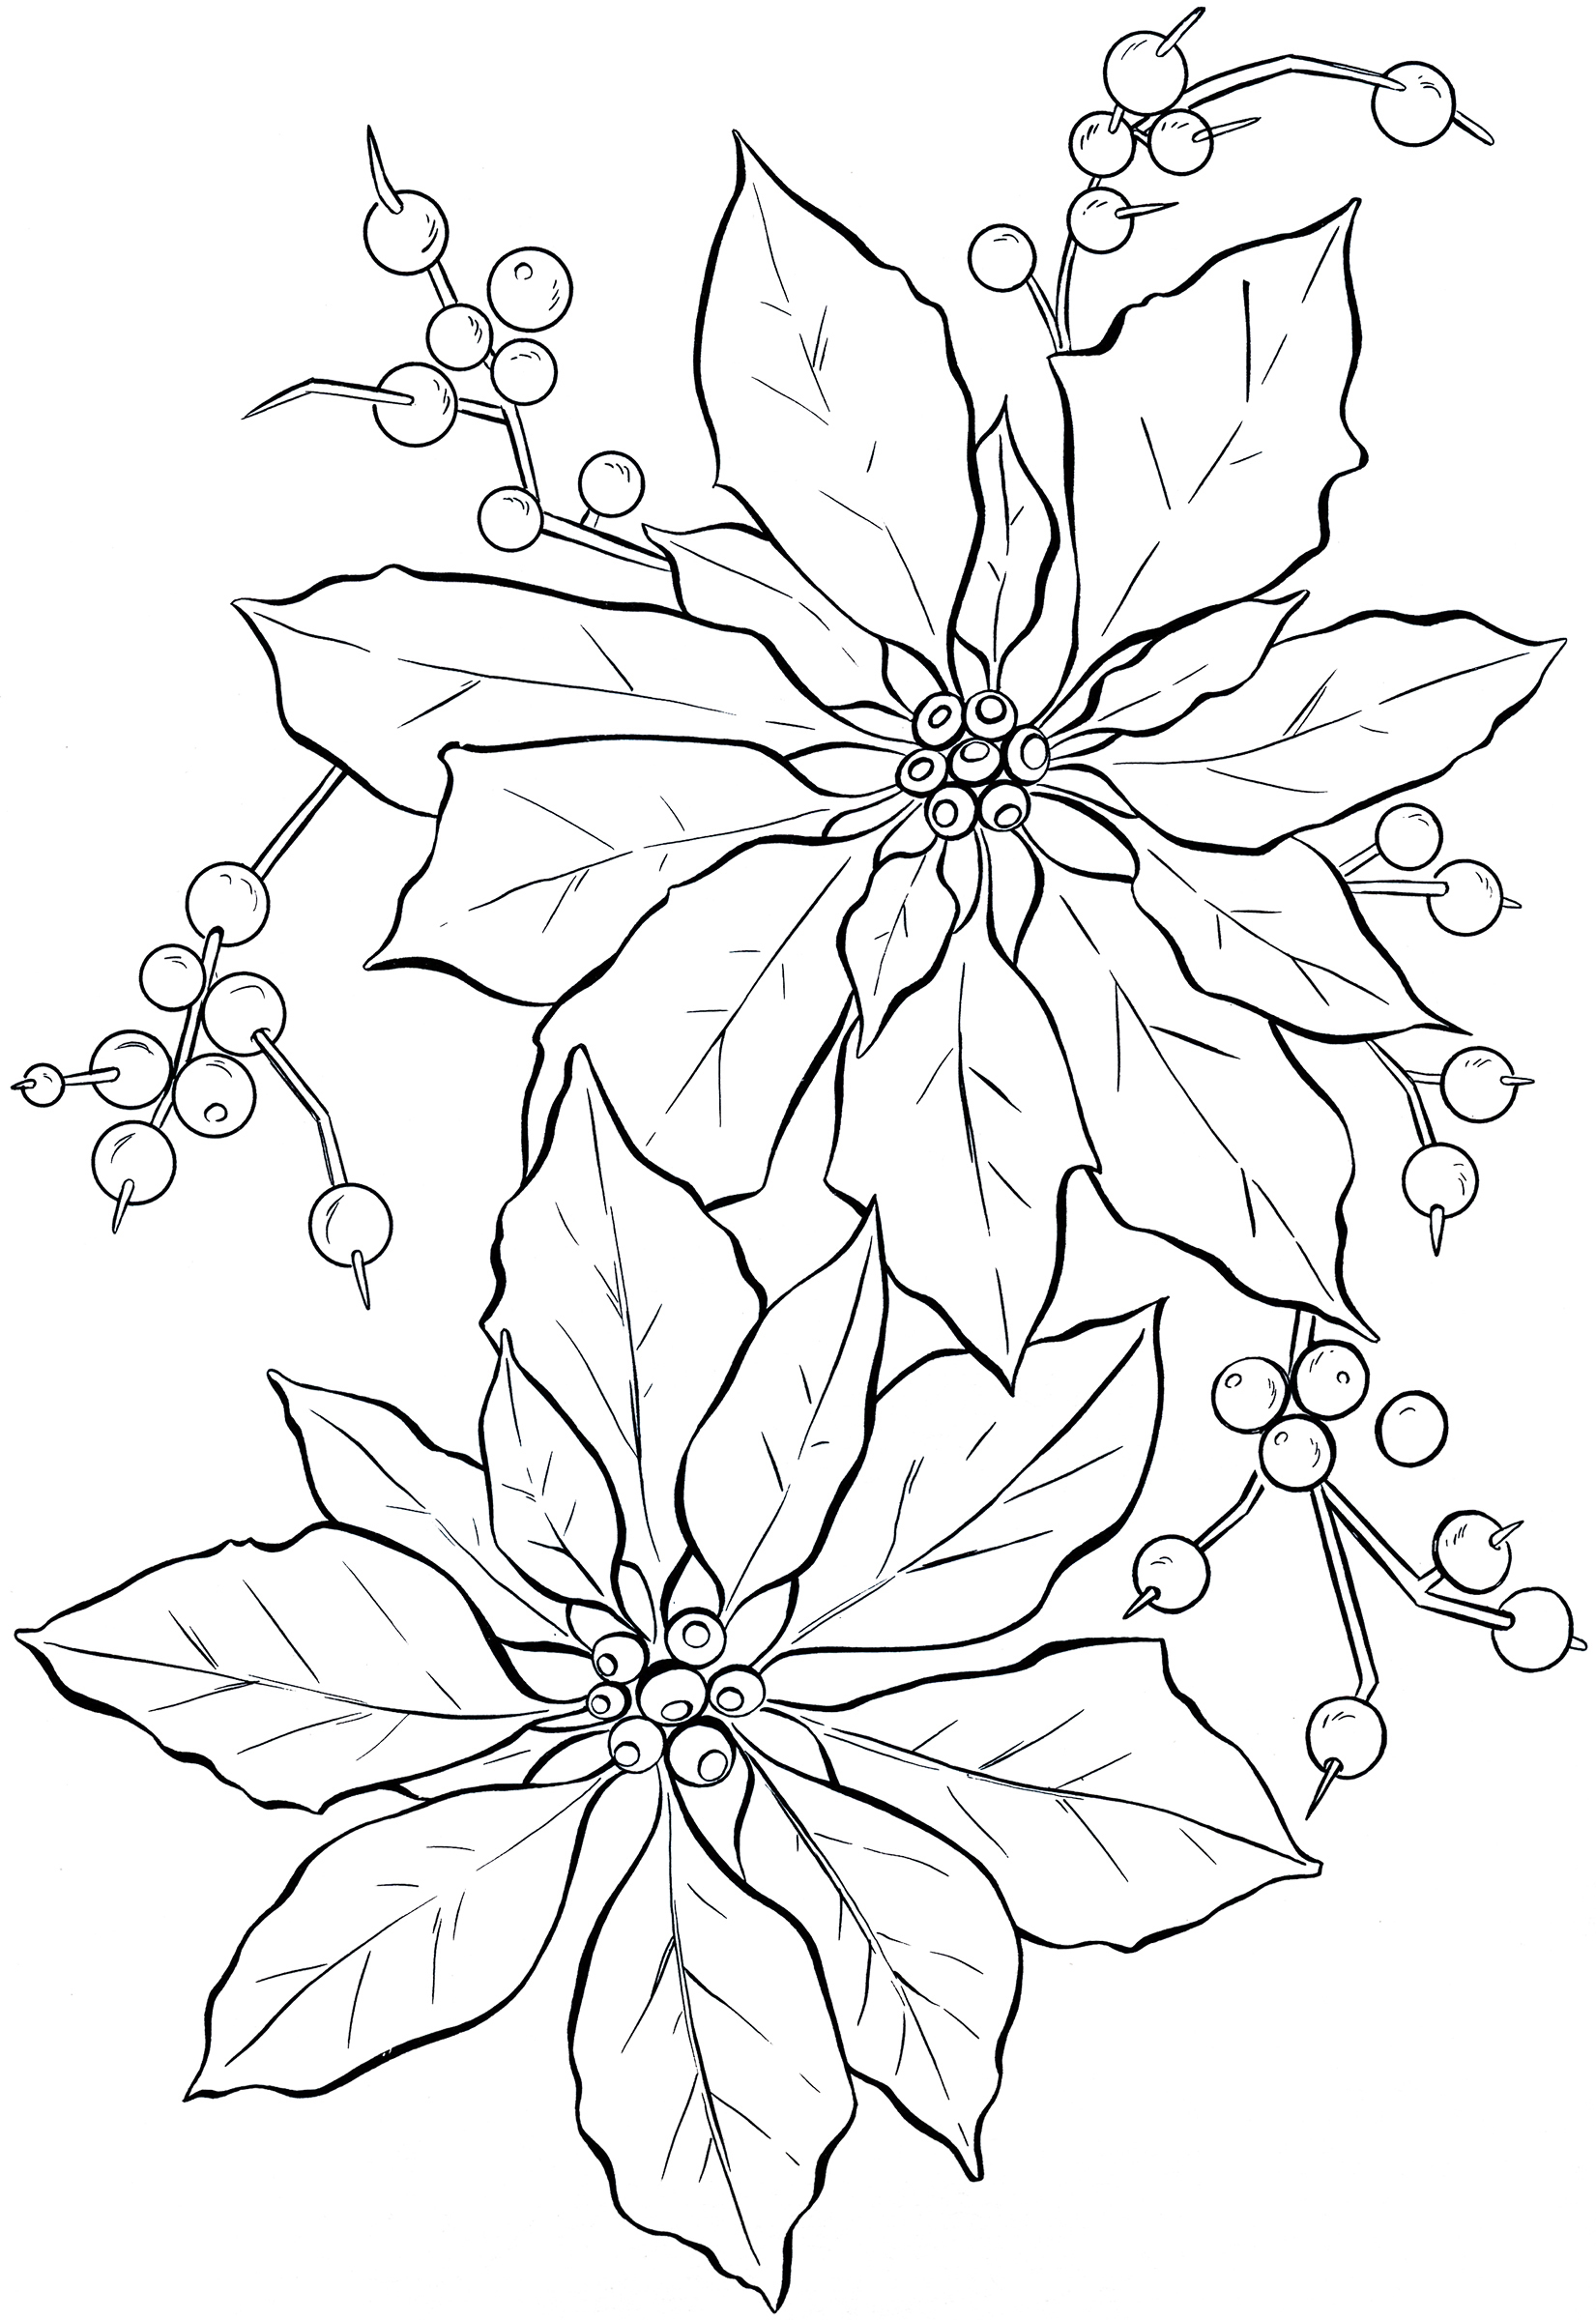 Line Art Instagram : Poinsettia line art christmas the graphics fairy